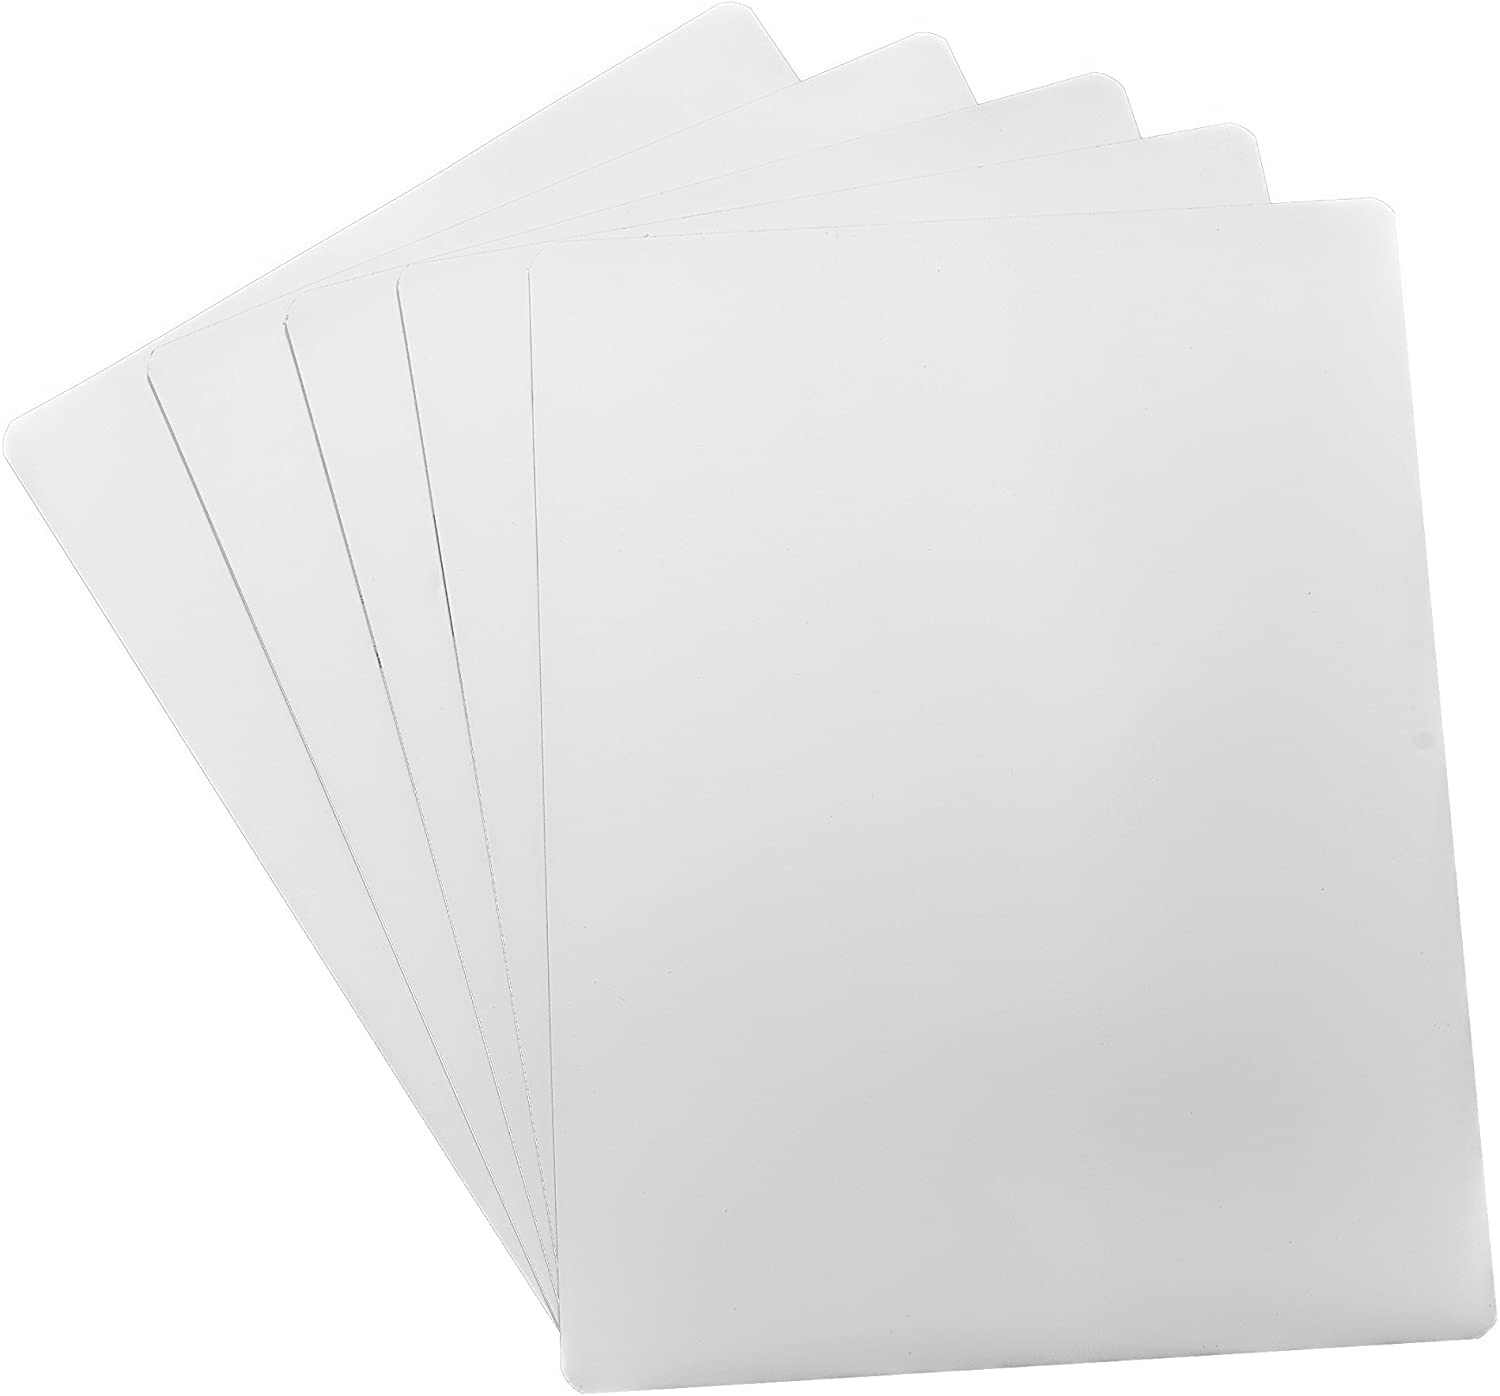 "Dry Erase White Magnetic Sheet - 9"" X 12"" - 5 Sheets"